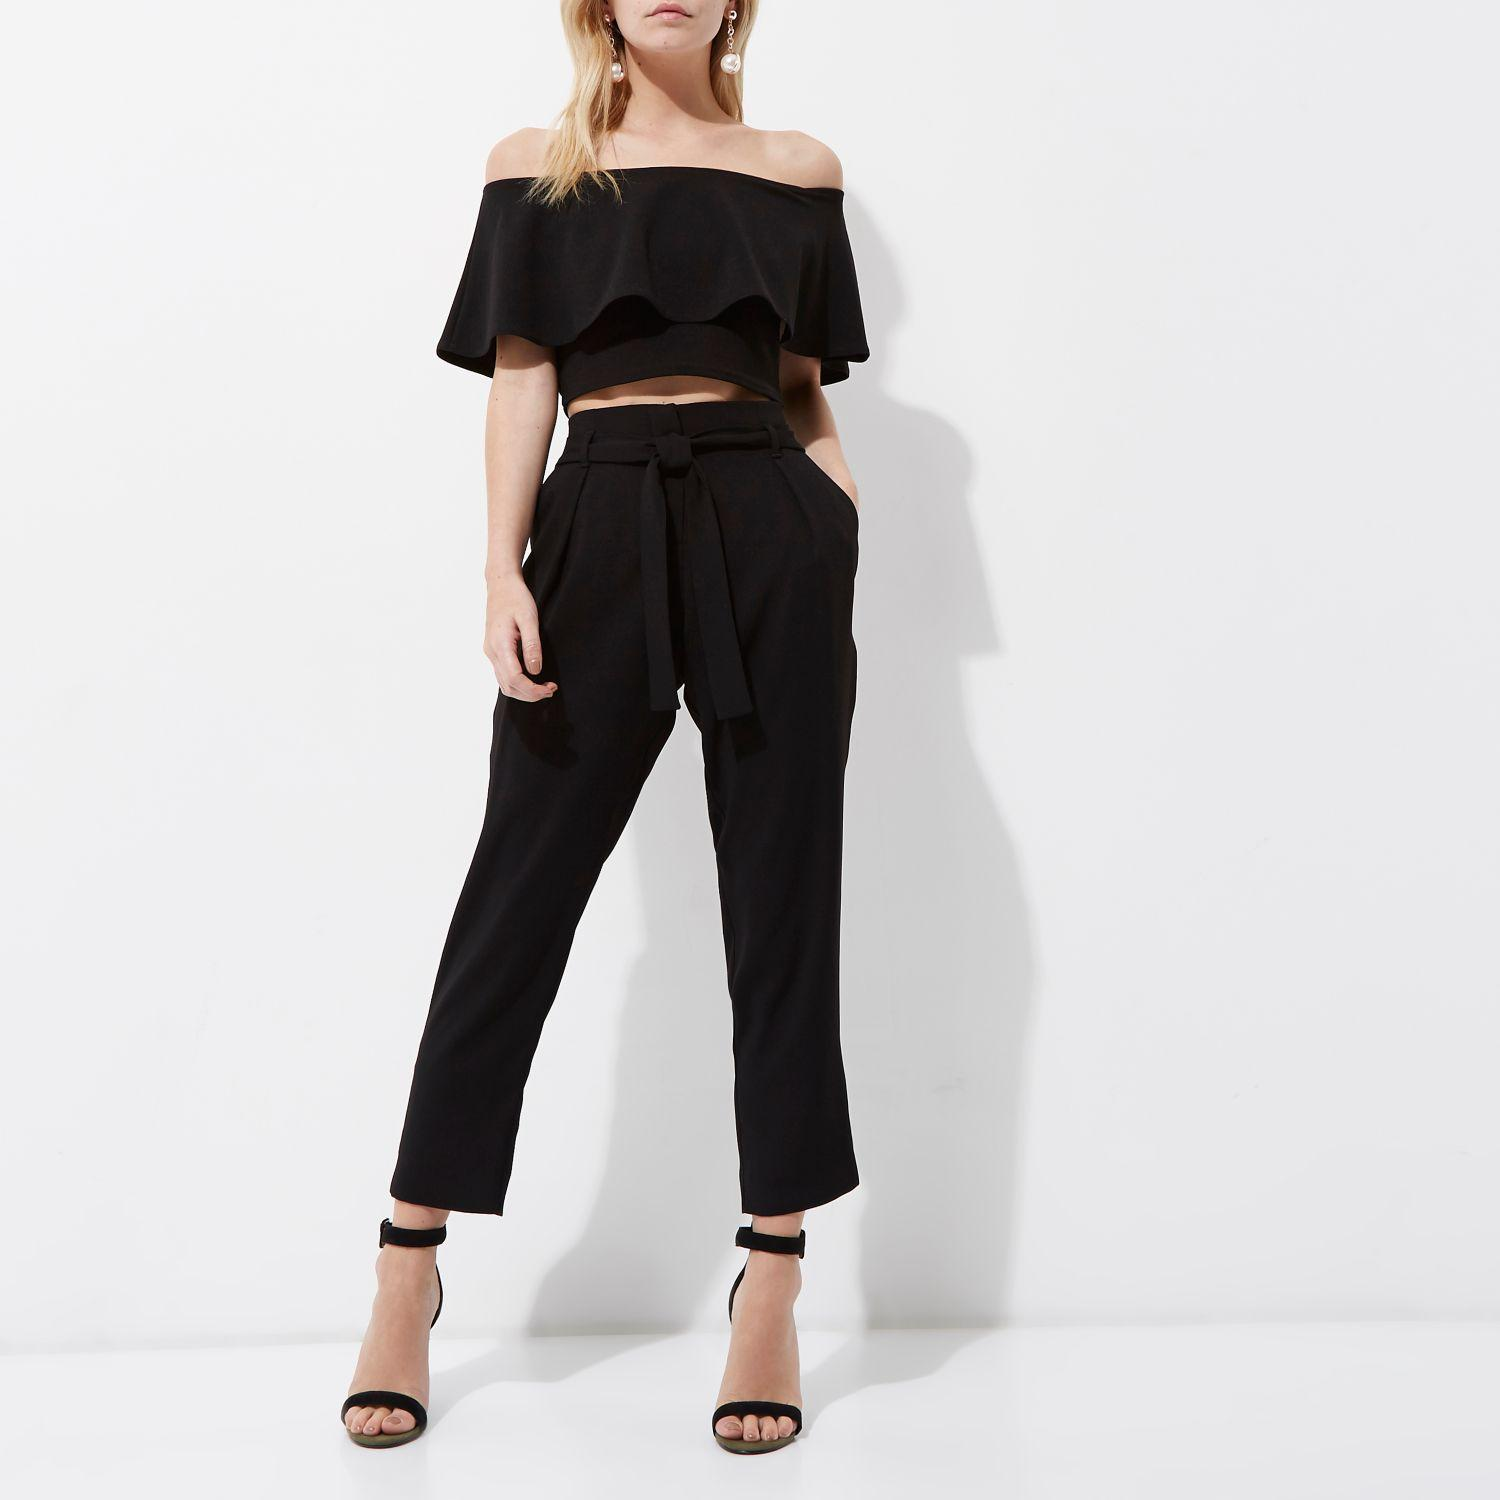 Gingham Trousers River Island